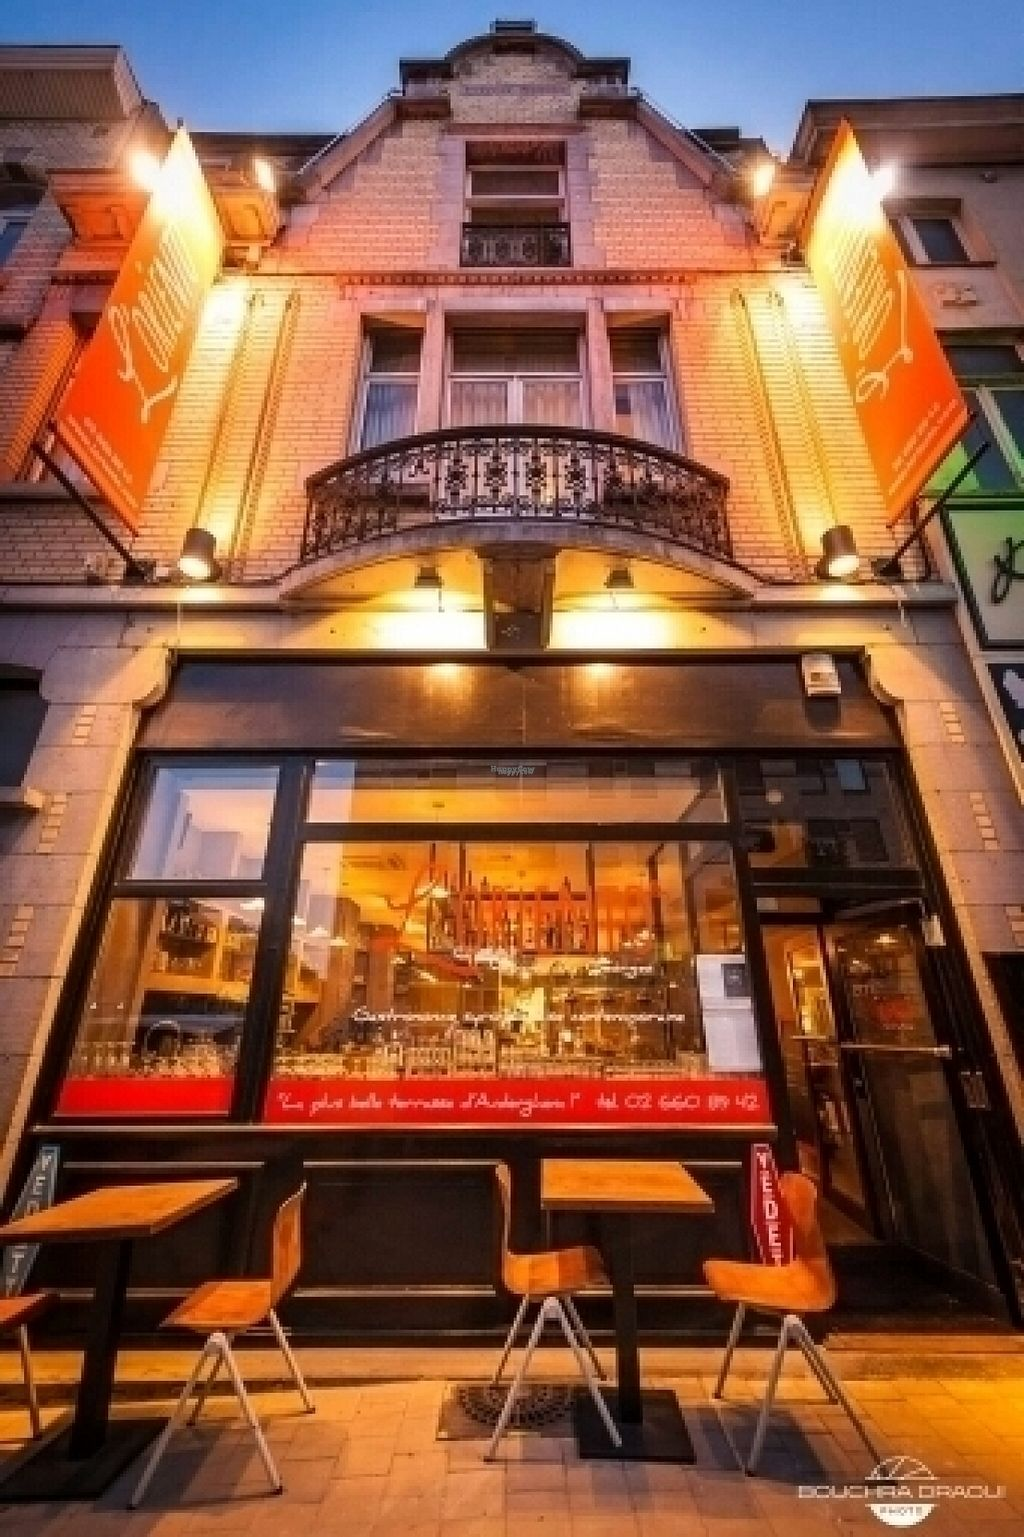 """Photo of CLOSED: L'Oriento - Jourdan  by <a href=""""/members/profile/Meaks"""">Meaks</a> <br/>L'Oriento - Jourdan <br/> August 5, 2016  - <a href='/contact/abuse/image/70134/165595'>Report</a>"""